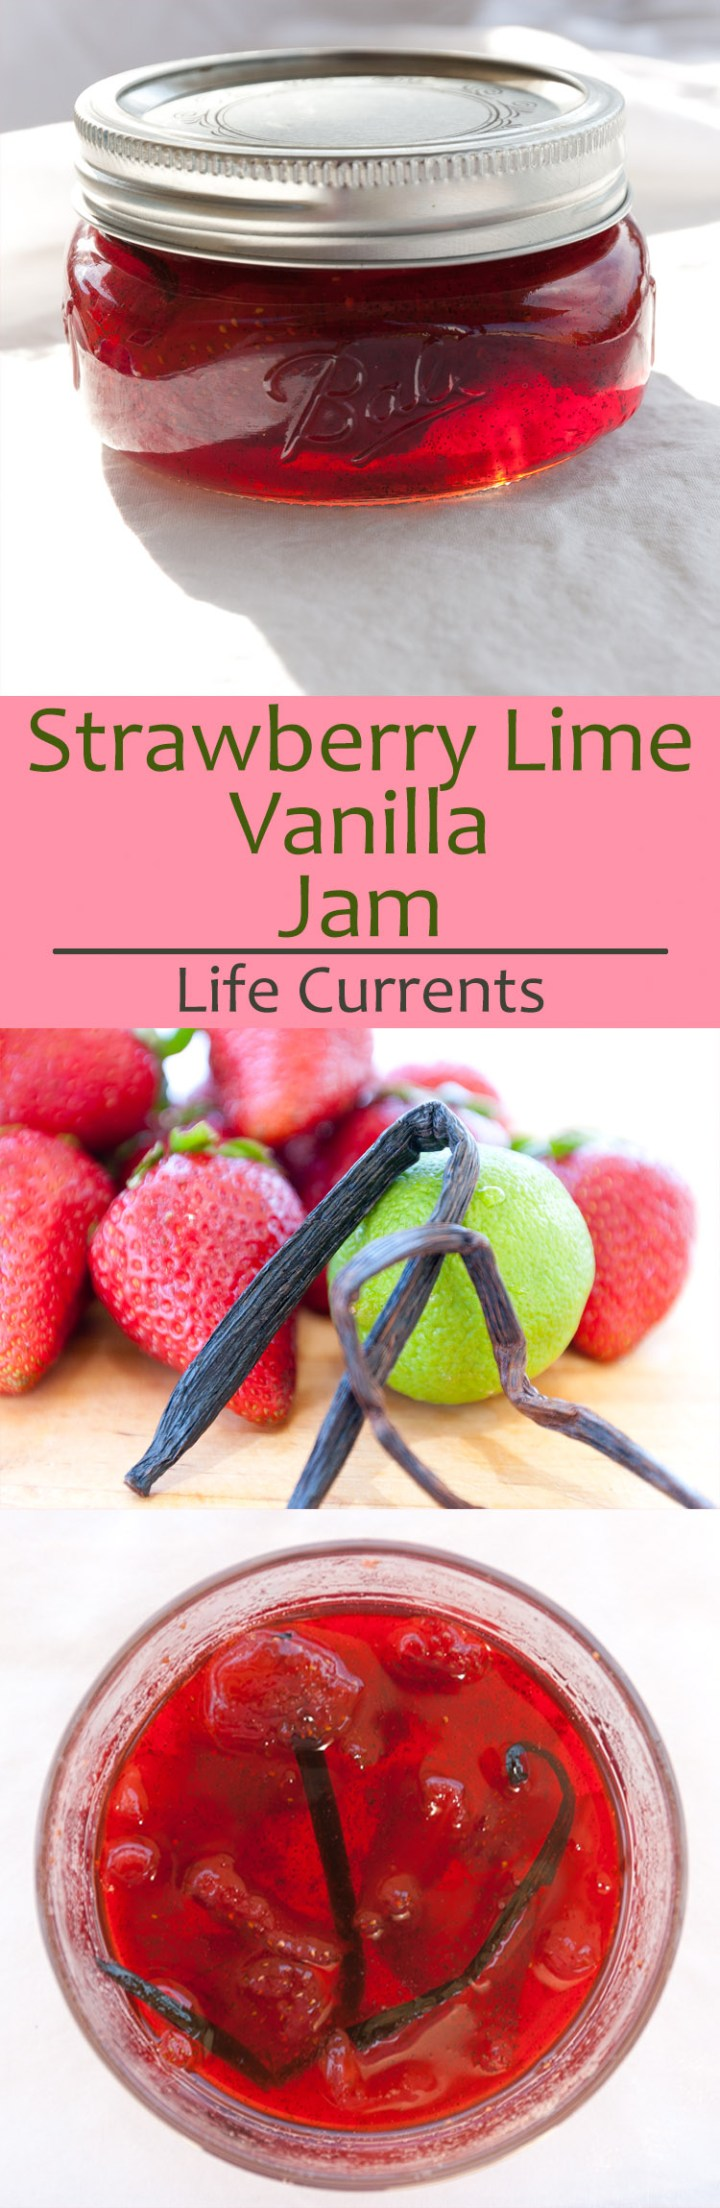 Strawberry-Lime Vanilla Jam: I love the combination of strawberries and lime, sweet and tart